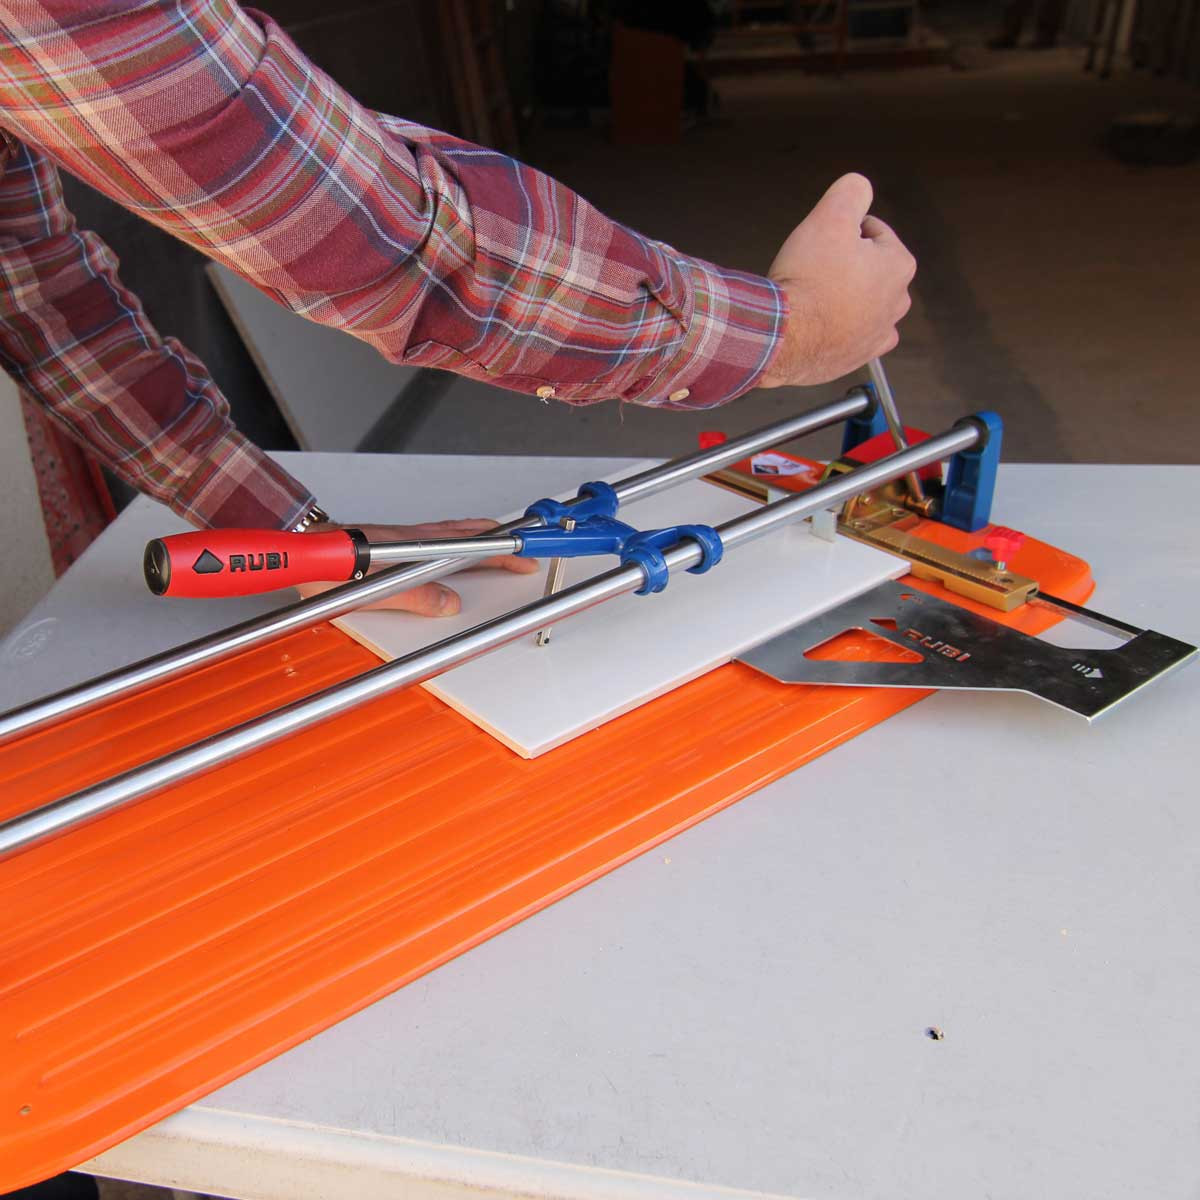 Rubi TS tile cutter scoring